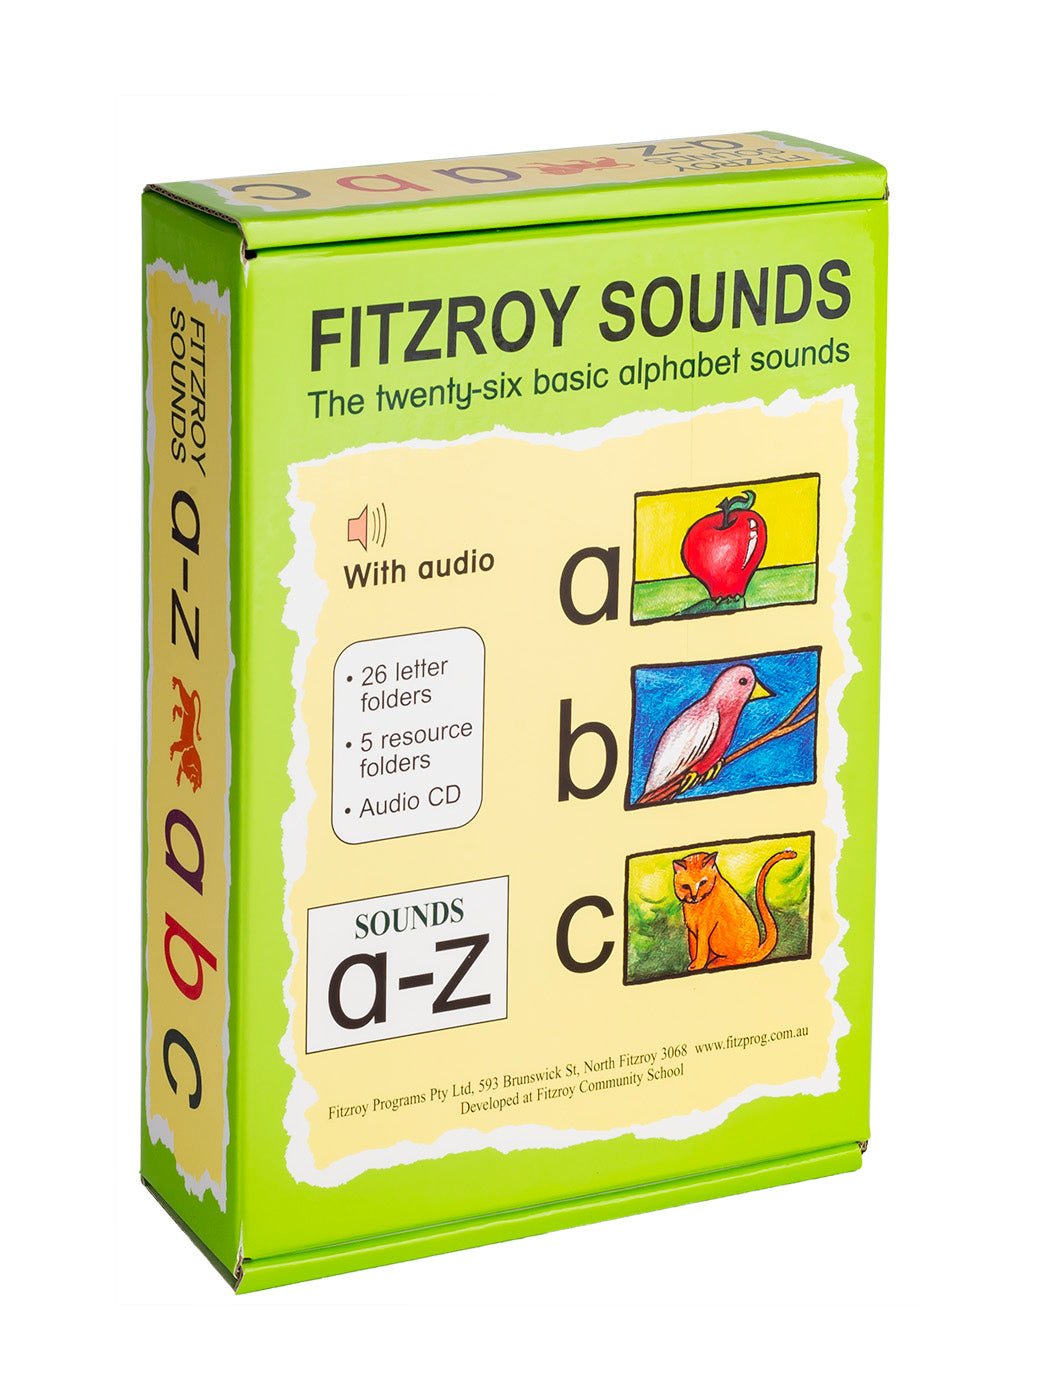 Fitzroy Sounds